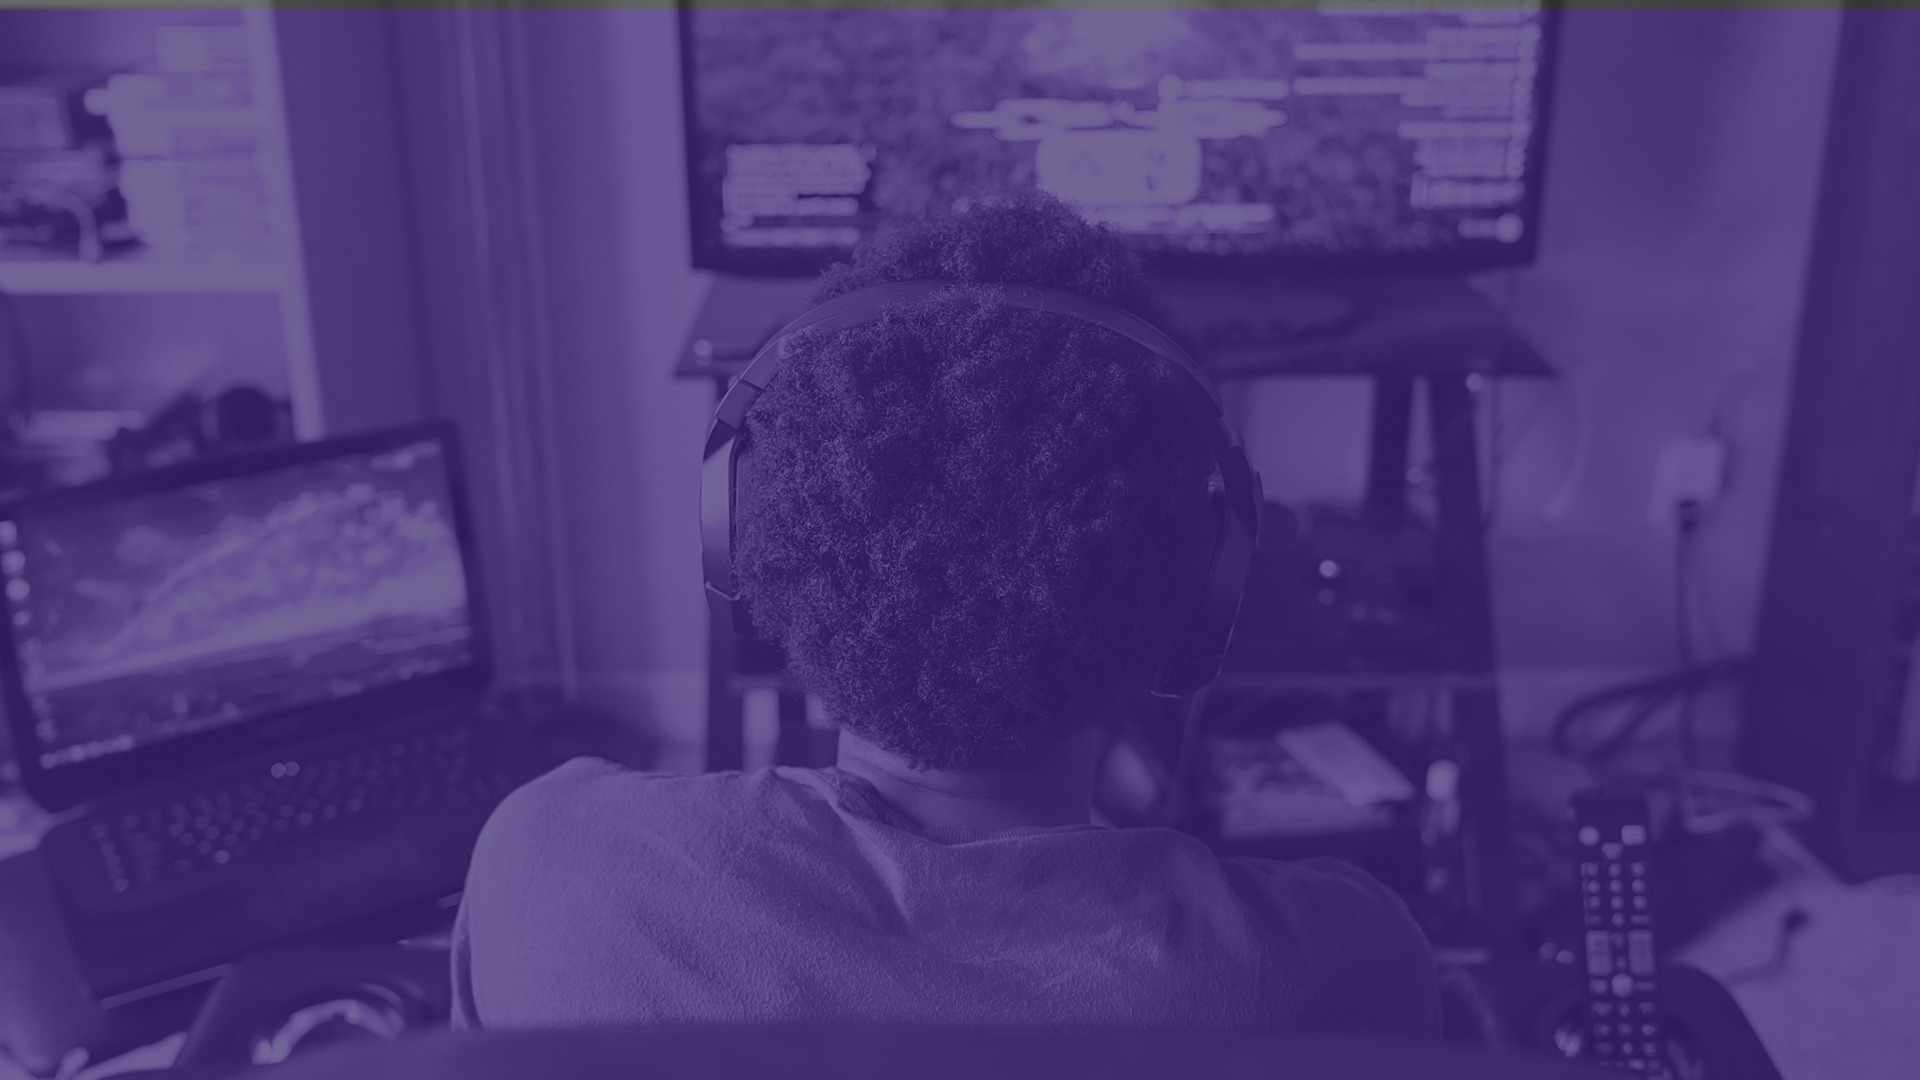 Webinar: Twitch 101: A Brand's Guide to Influence on the Platform